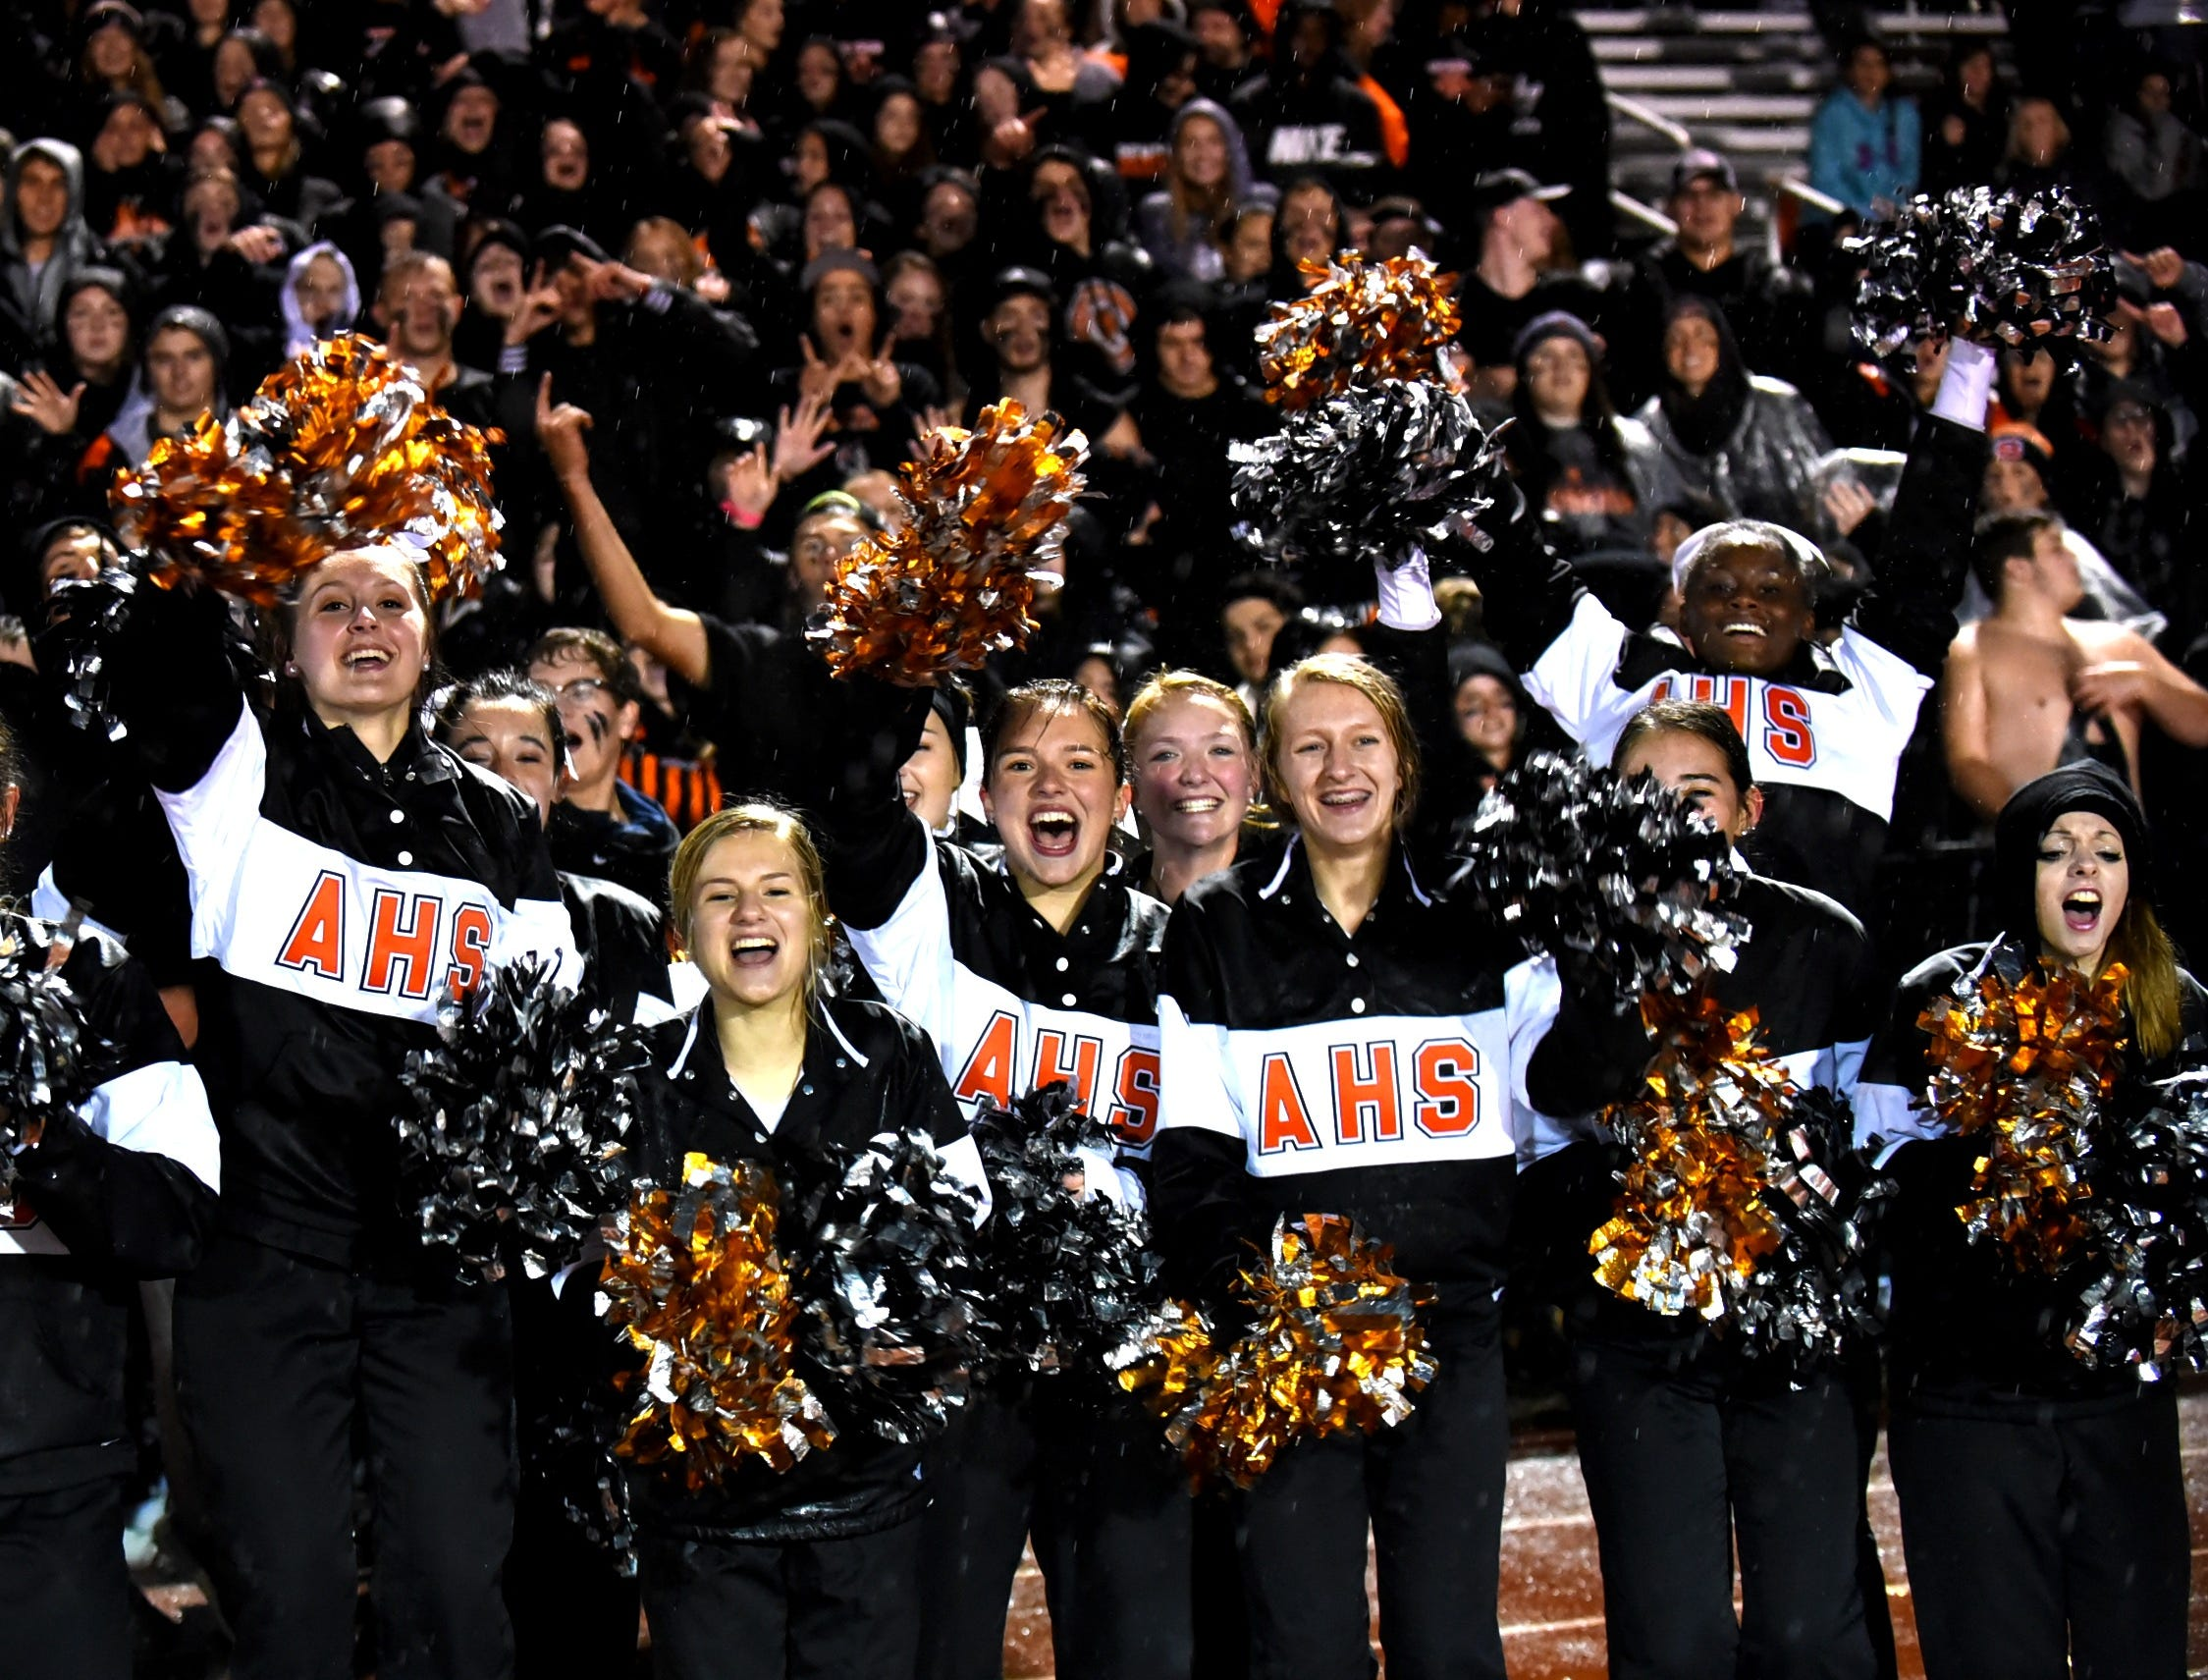 The Redskins Cheerleaders celebrate Anderson's crosstown win over rival Turpin, October 12, 2018.